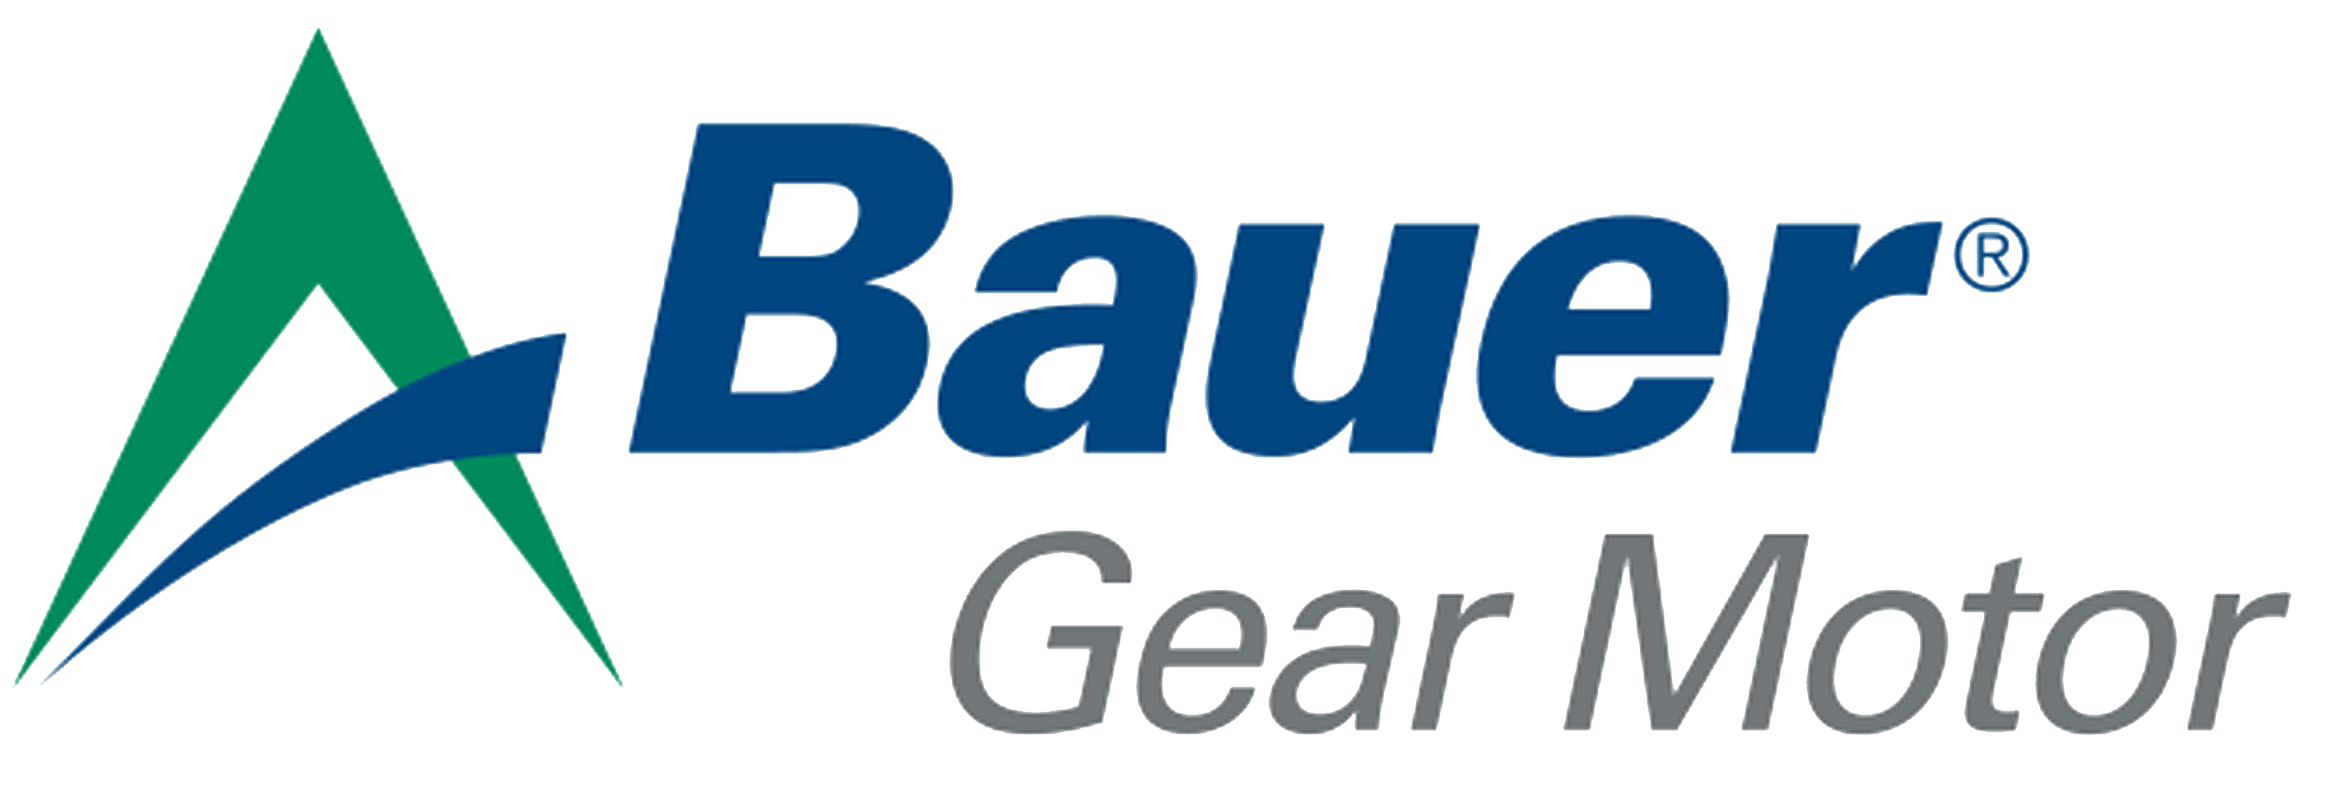 bauer logo products rotor technical services bauer gear motor wiring diagram at readyjetset.co